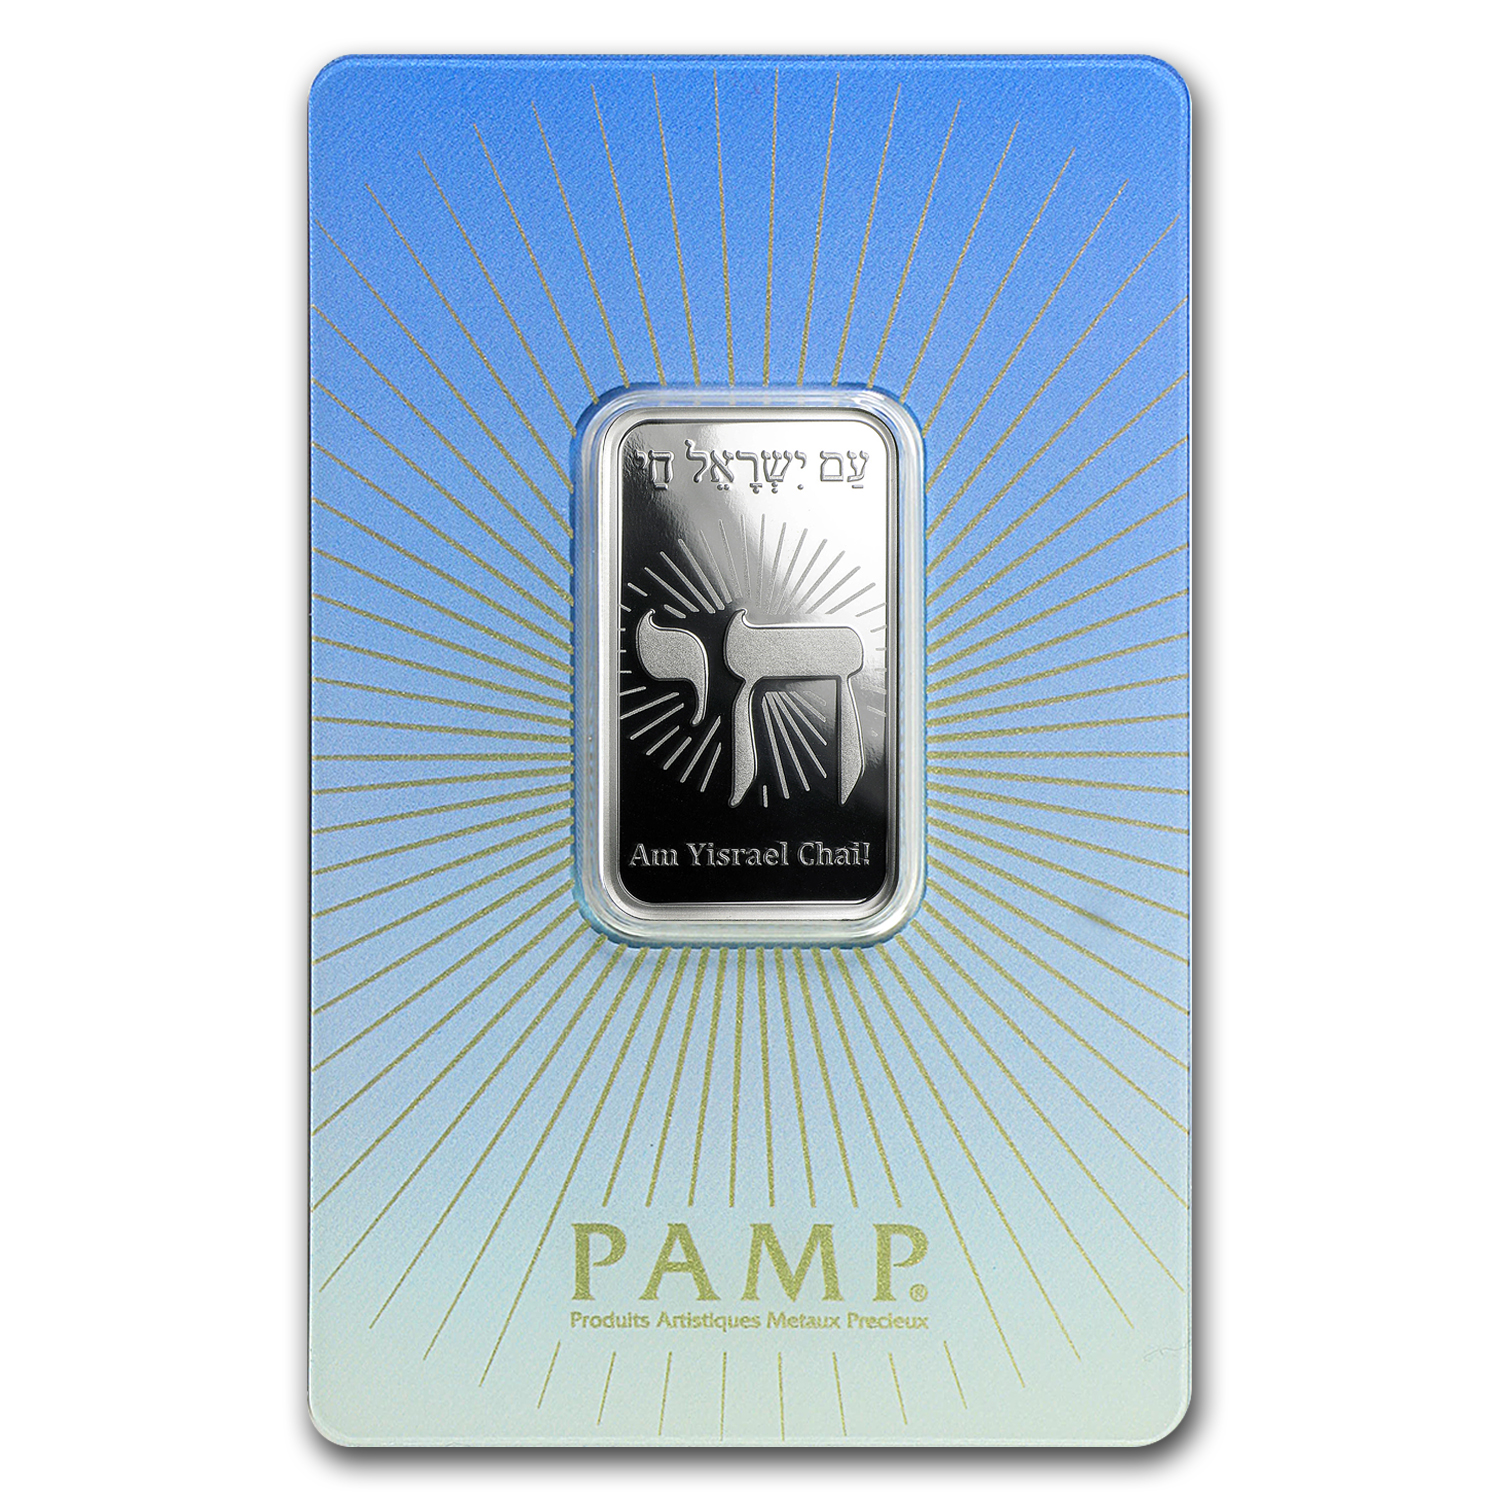 10 G Silver Bar Pamp Suisse Religious Series Am Yisrael